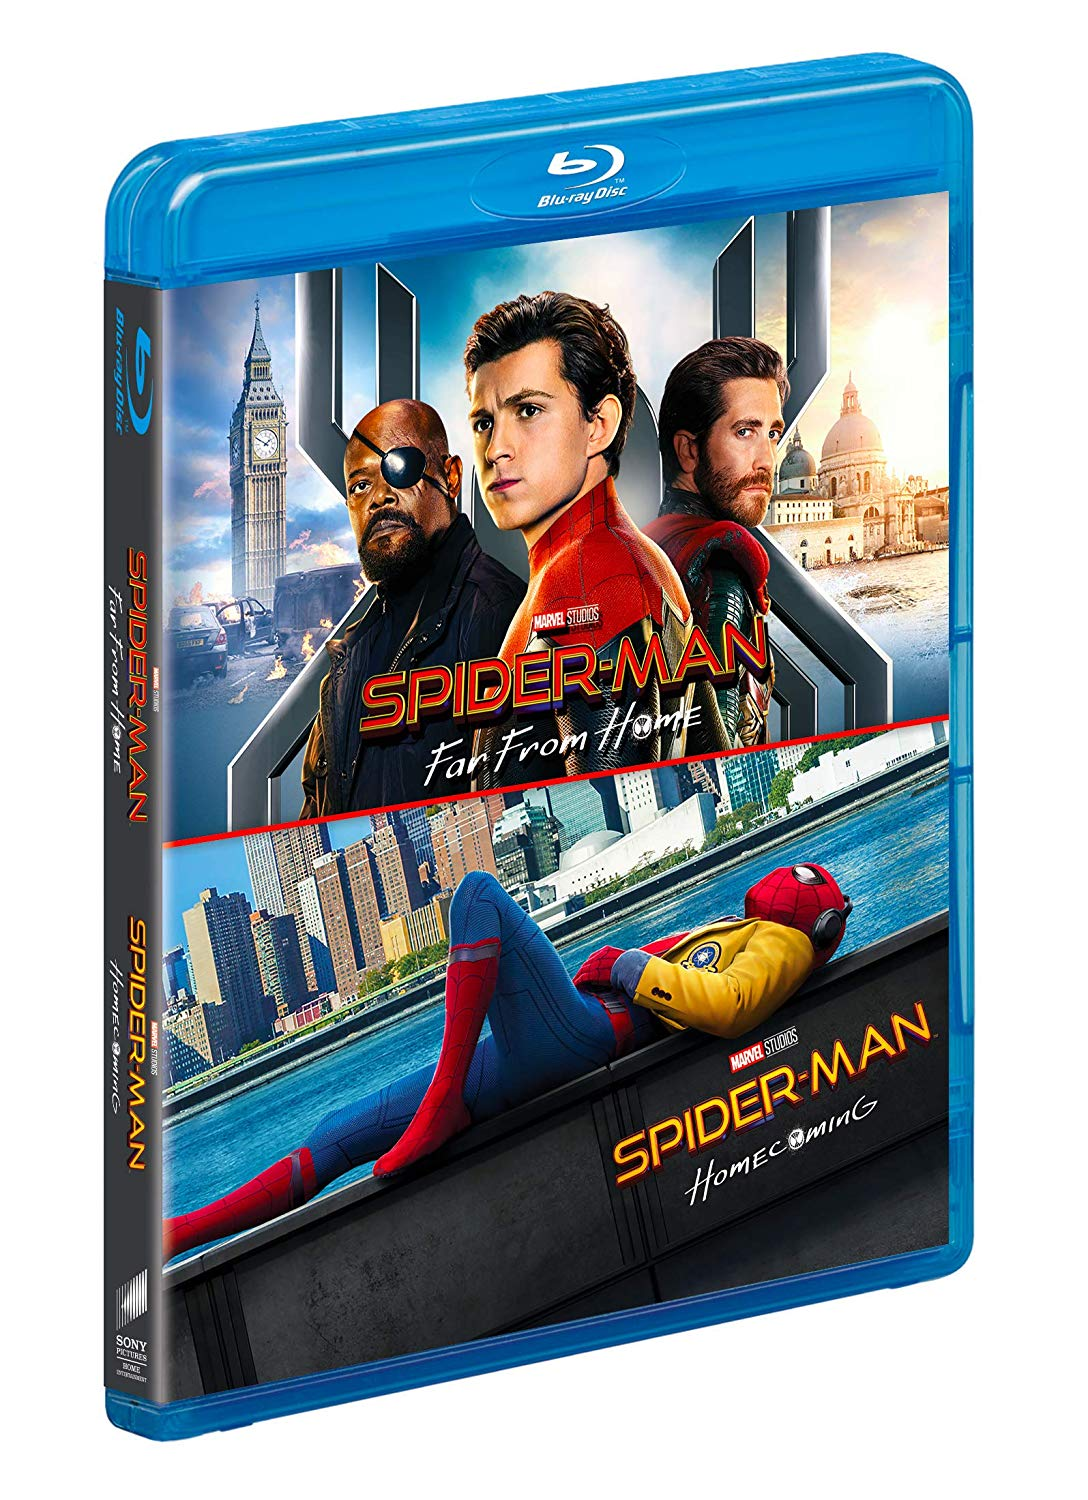 COF.SPIDER-MAN: FAR FROM HOME / HOMECOMING (2 BLU-RAY)